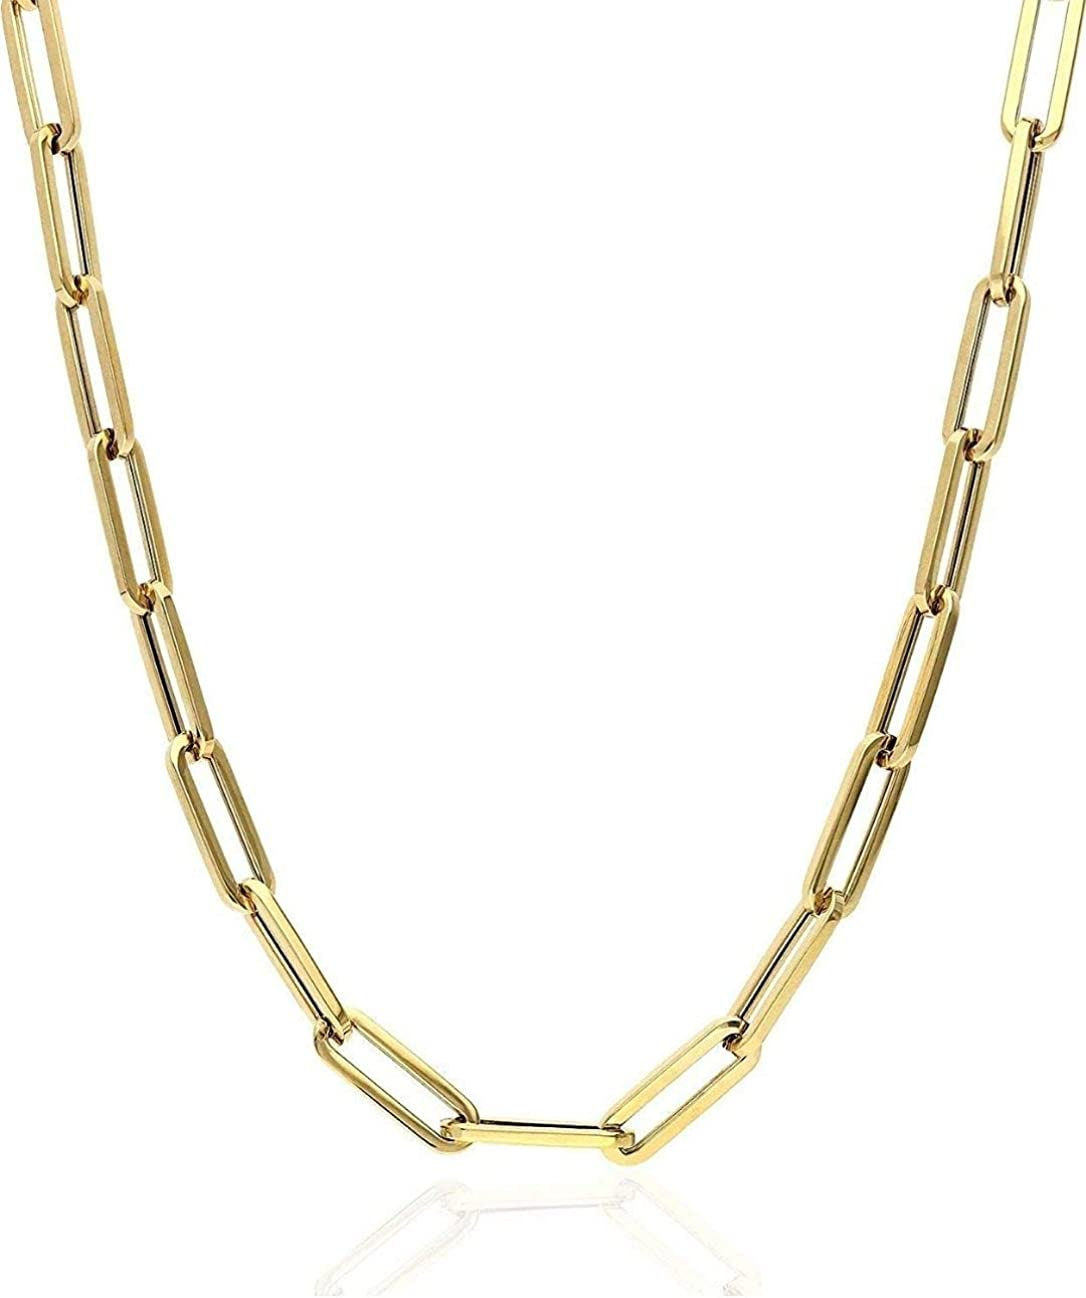 Solid 925 Sterling Silver - 14k Gifts Plated Elongated Rolo New products, world's highest quality popular! Pap Gold